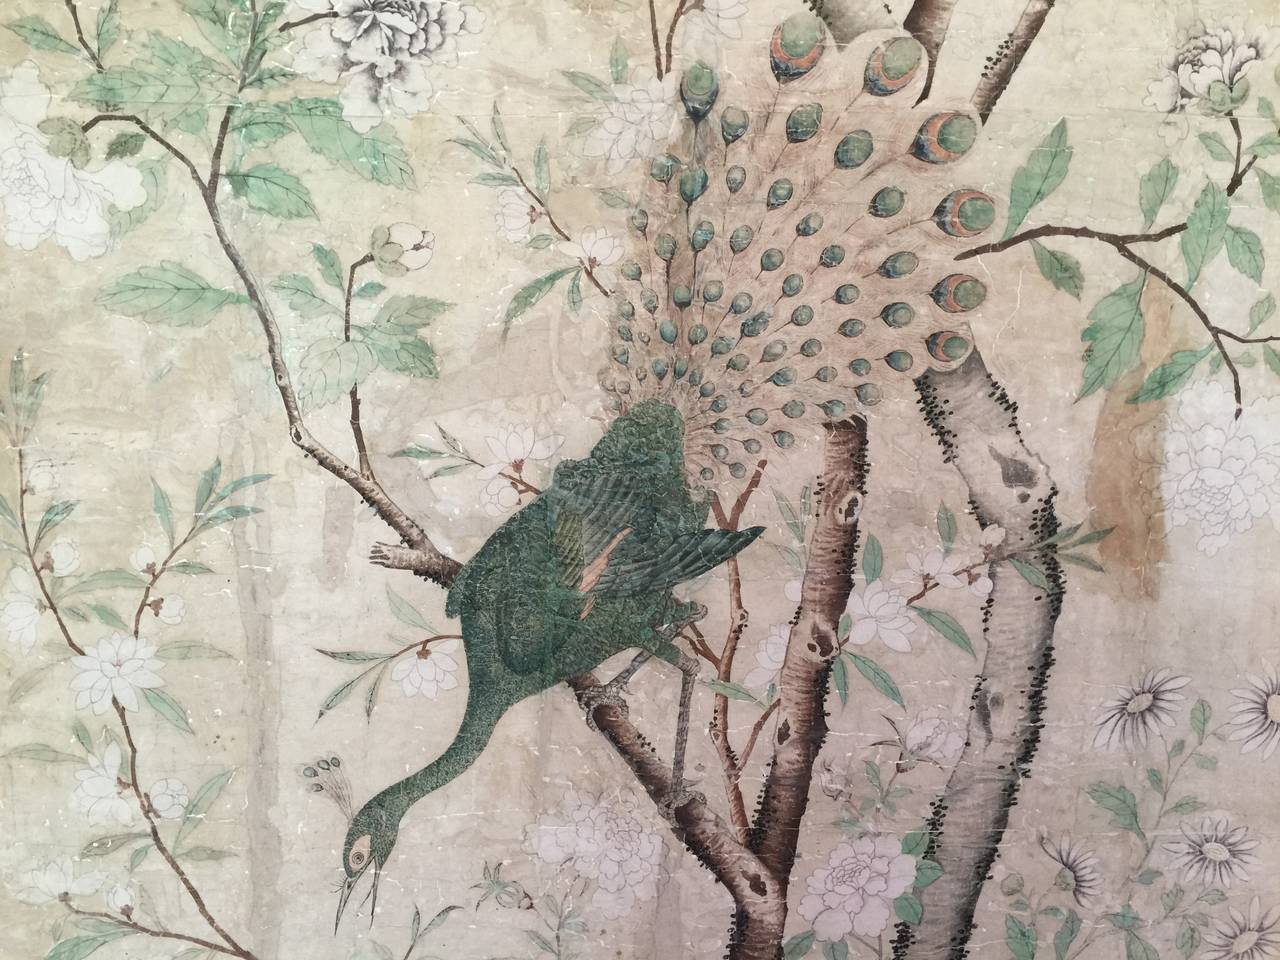 Free Download Framed 18th Century Chinese Wallpaper Panel Image 6